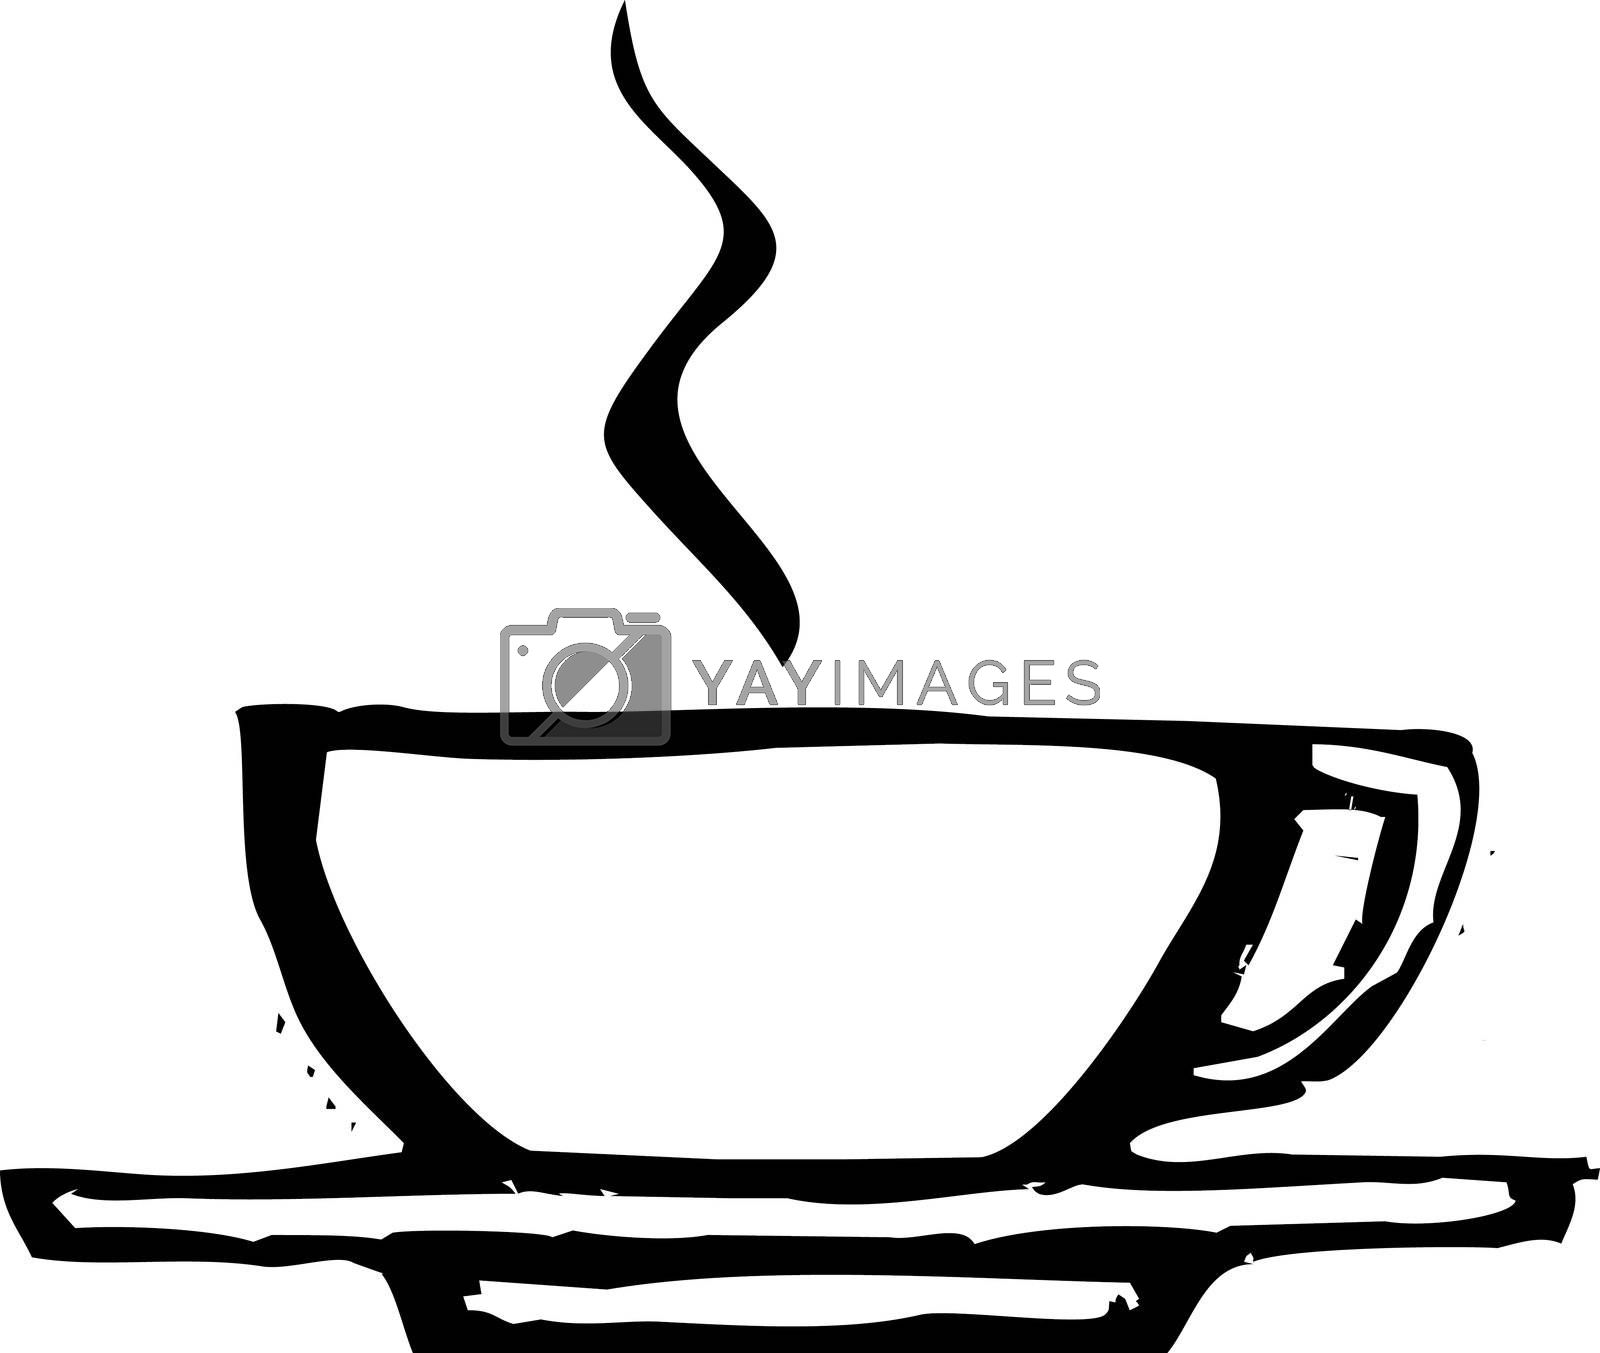 rough woodcut image of a coffee or espresso cup.